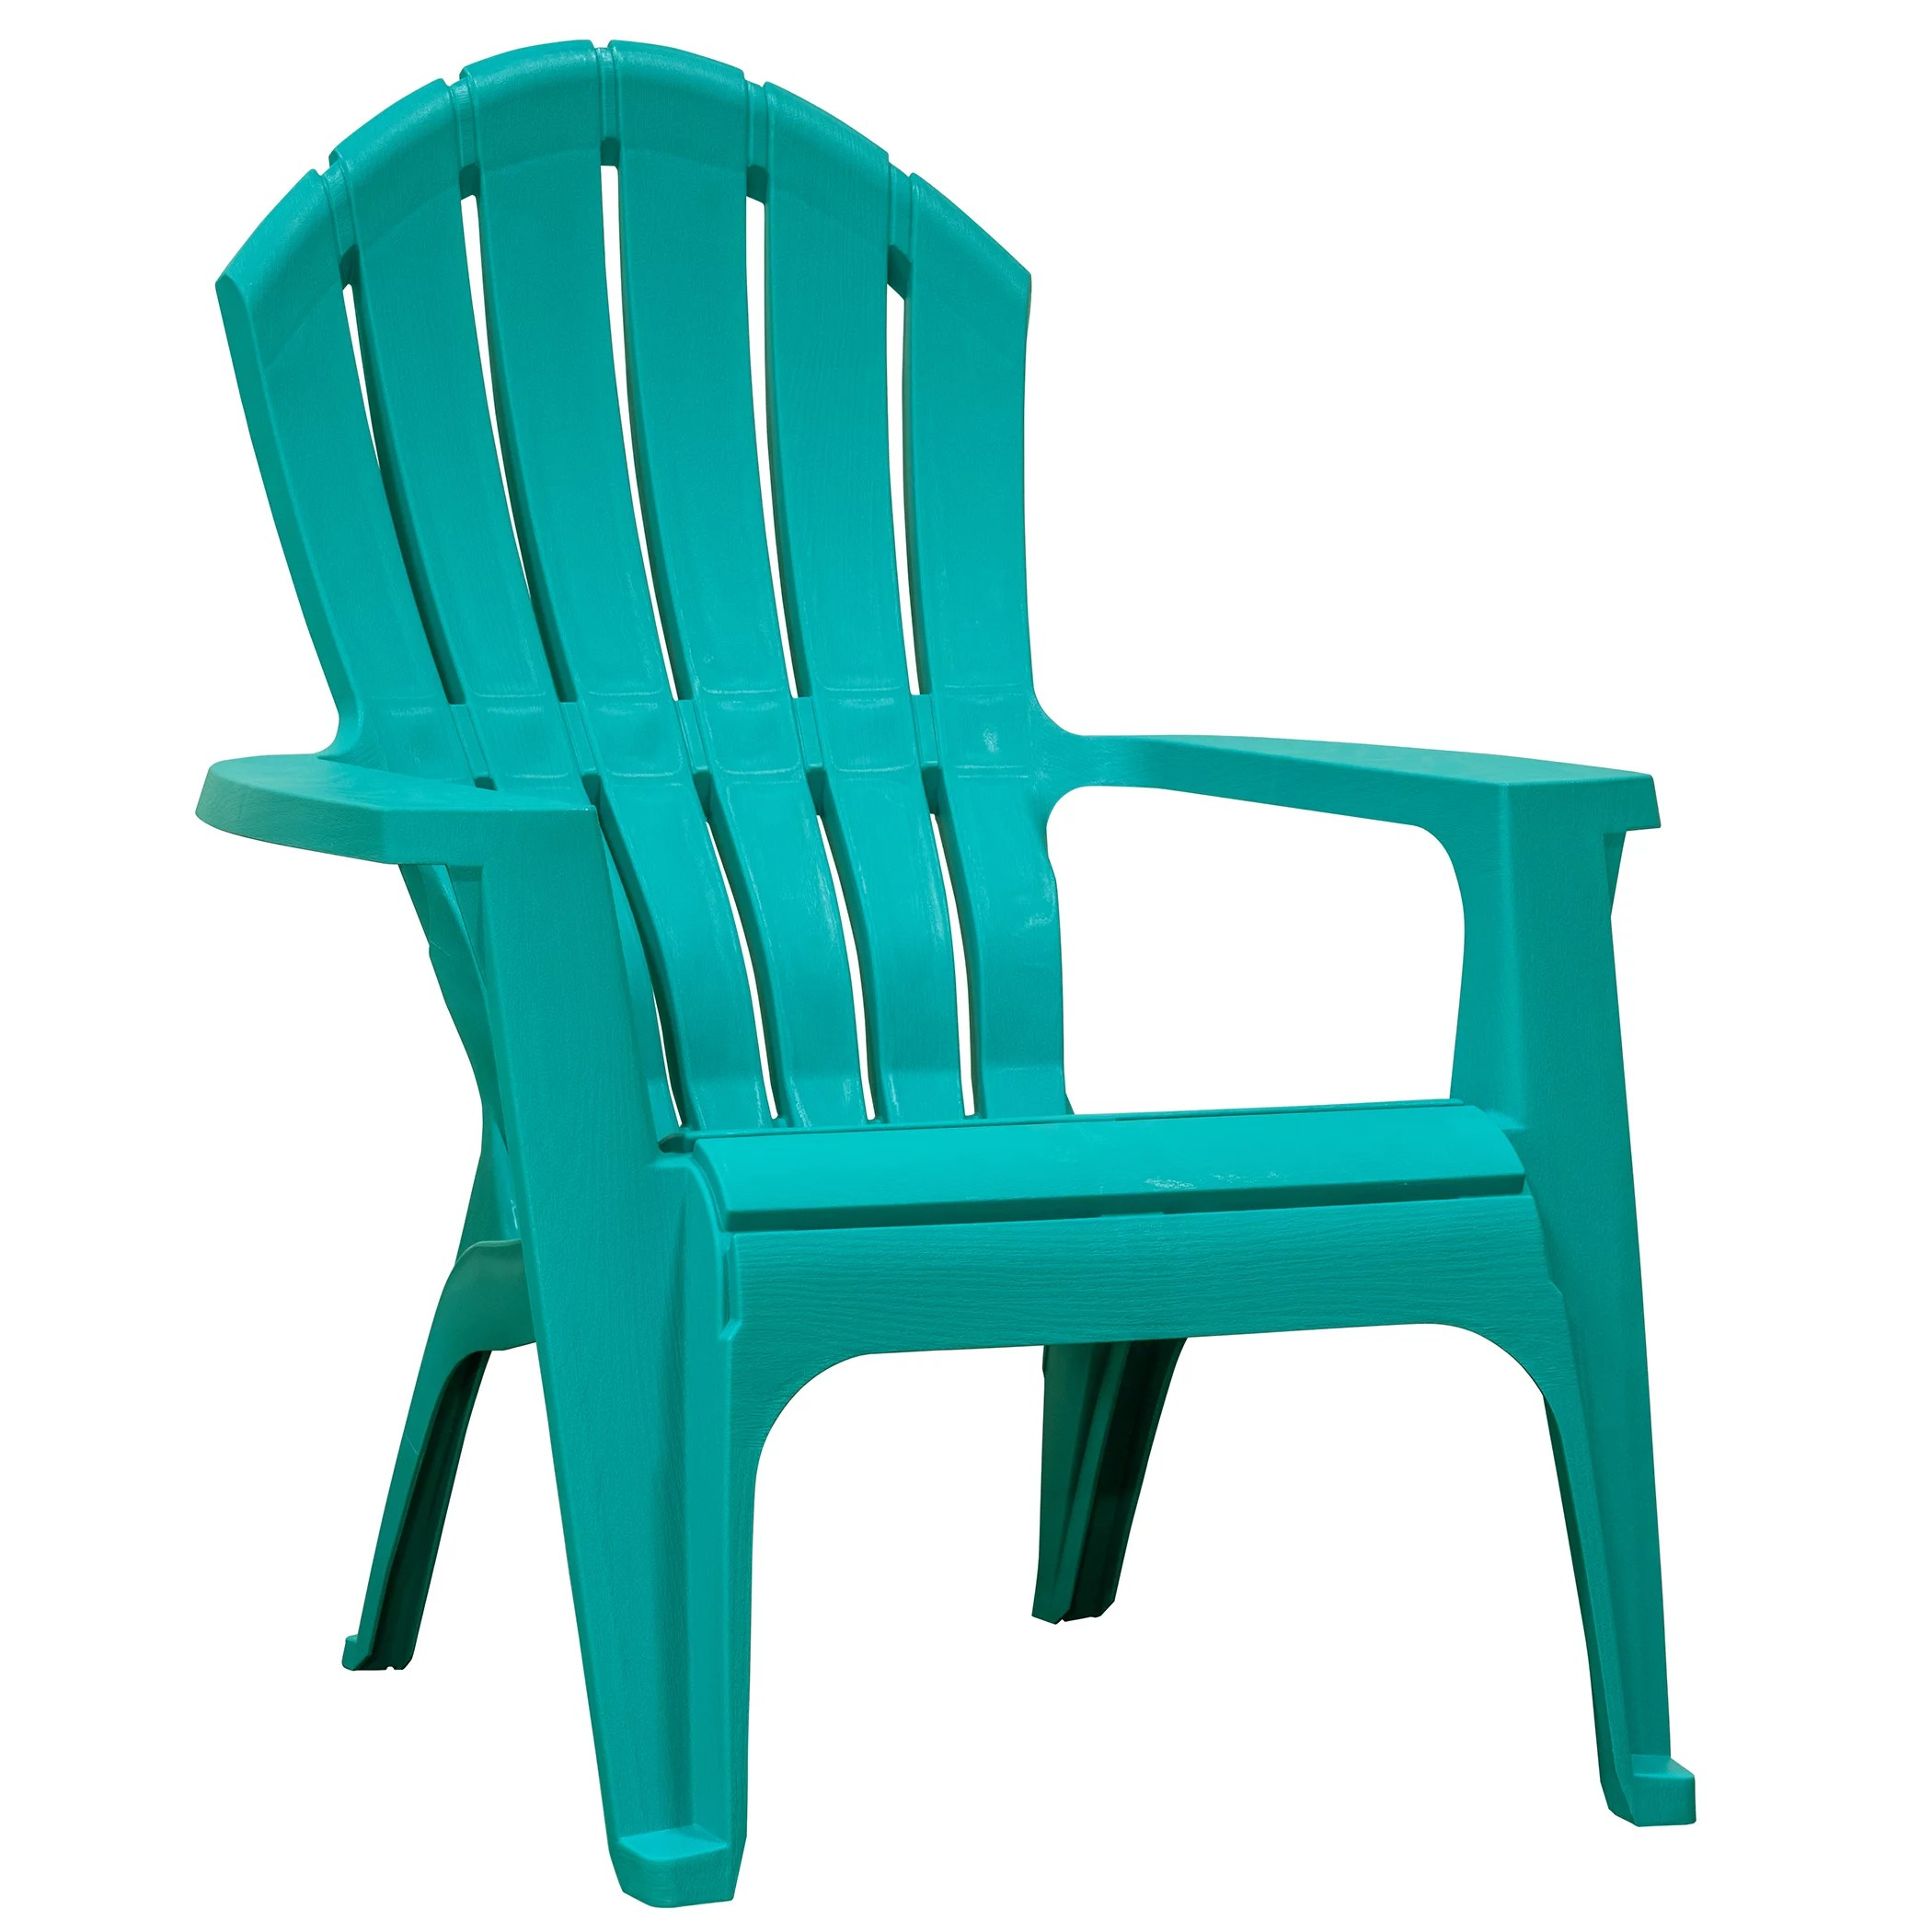 adams manufacturing realcomfort outdoor resin stackable adirondack chair gray